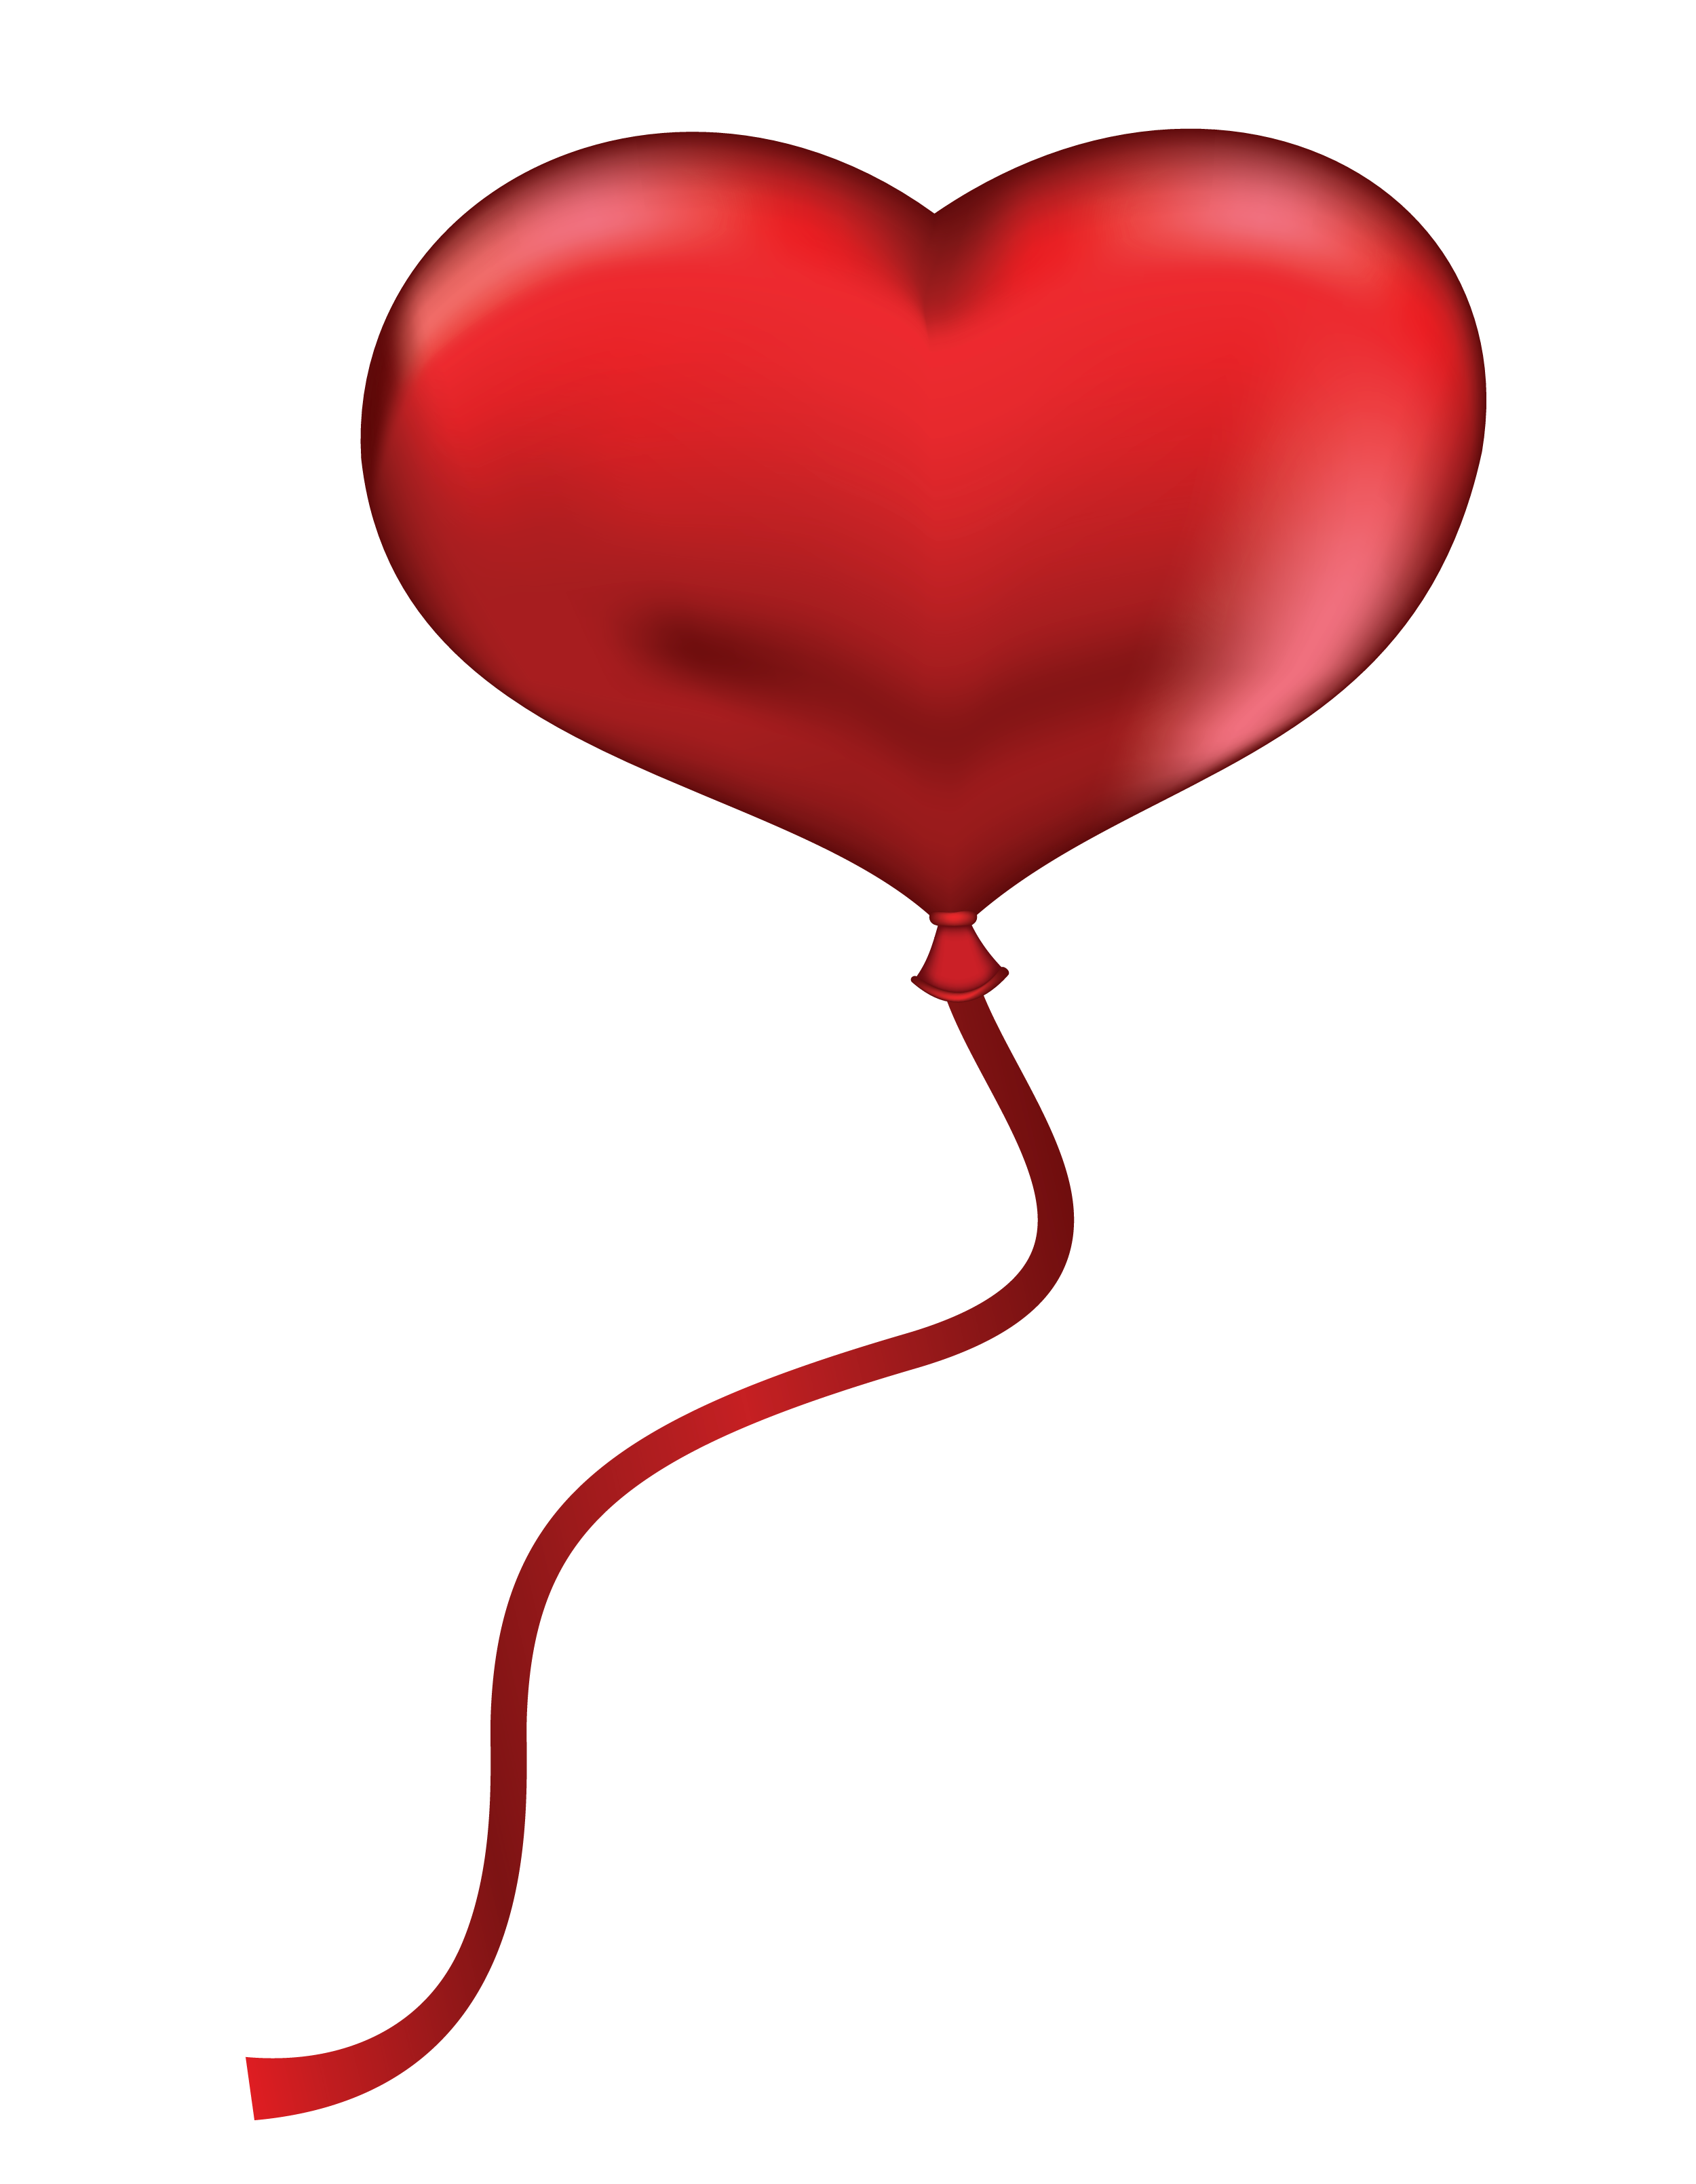 Red heart png picture. Clipart hearts balloon